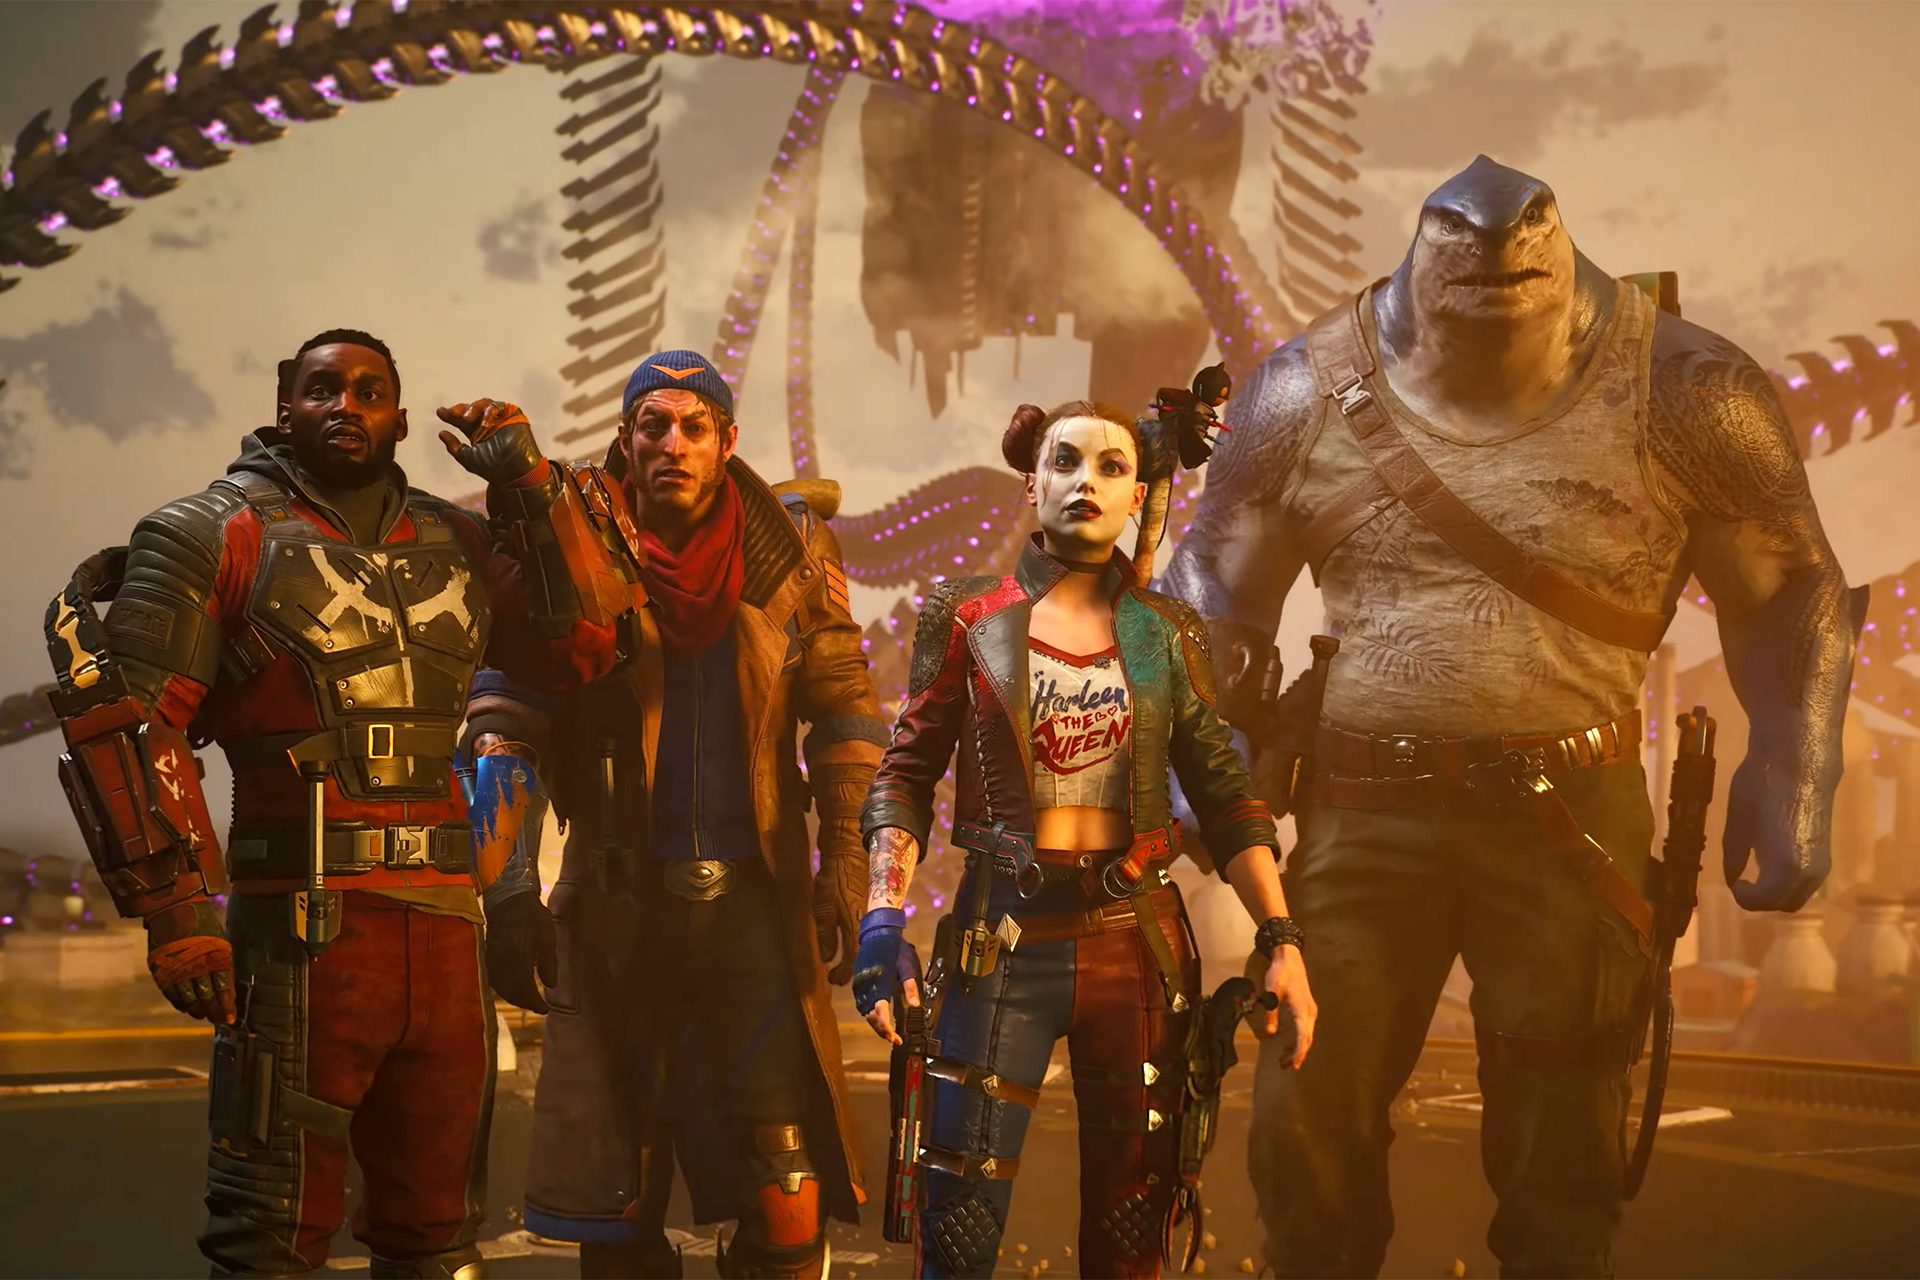 'Suicide Squad' game trailer shows why you'll take down the Justice League | Engadget